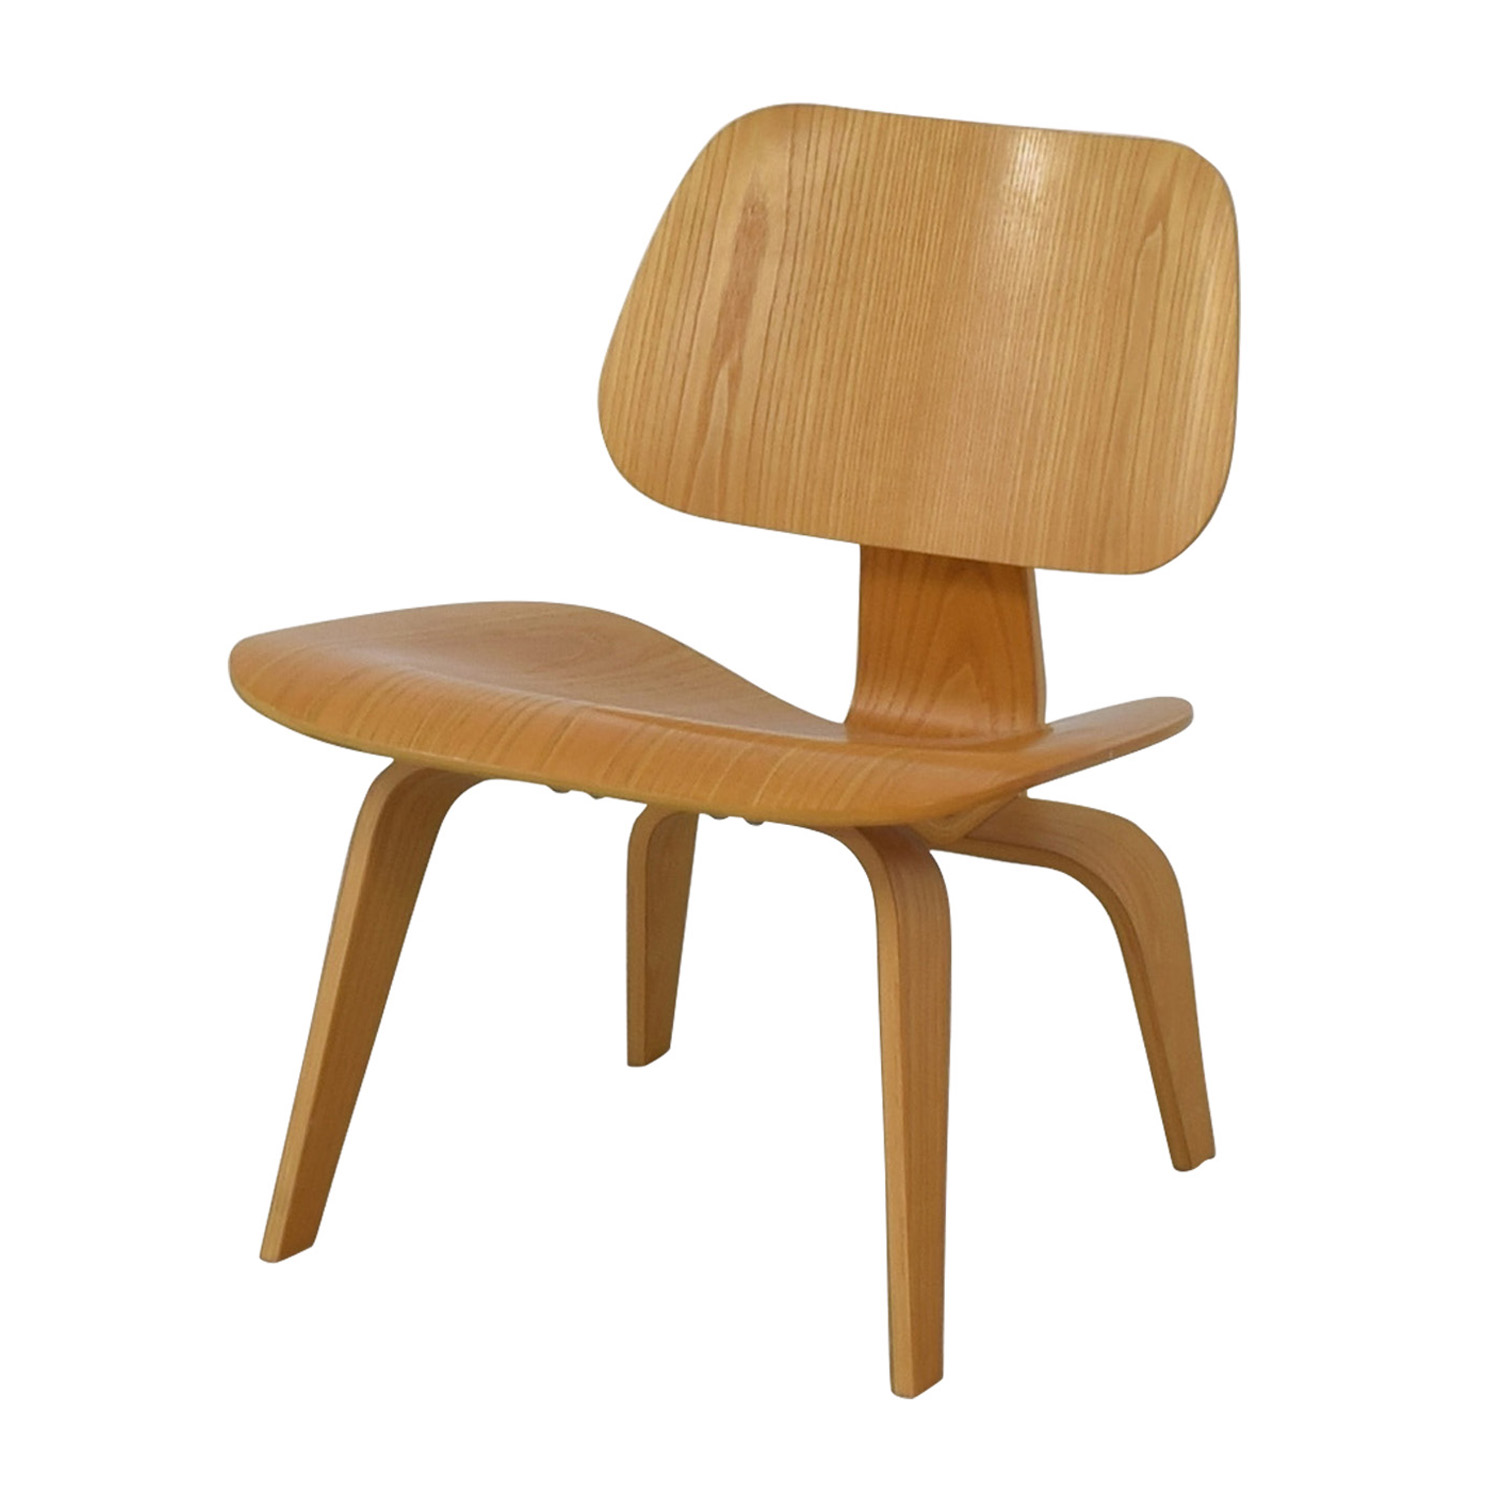 Super 65 Off Herman Miller Design Within Reach Herman Miller Eames Molded Plywood Lounge Chair Chairs Machost Co Dining Chair Design Ideas Machostcouk